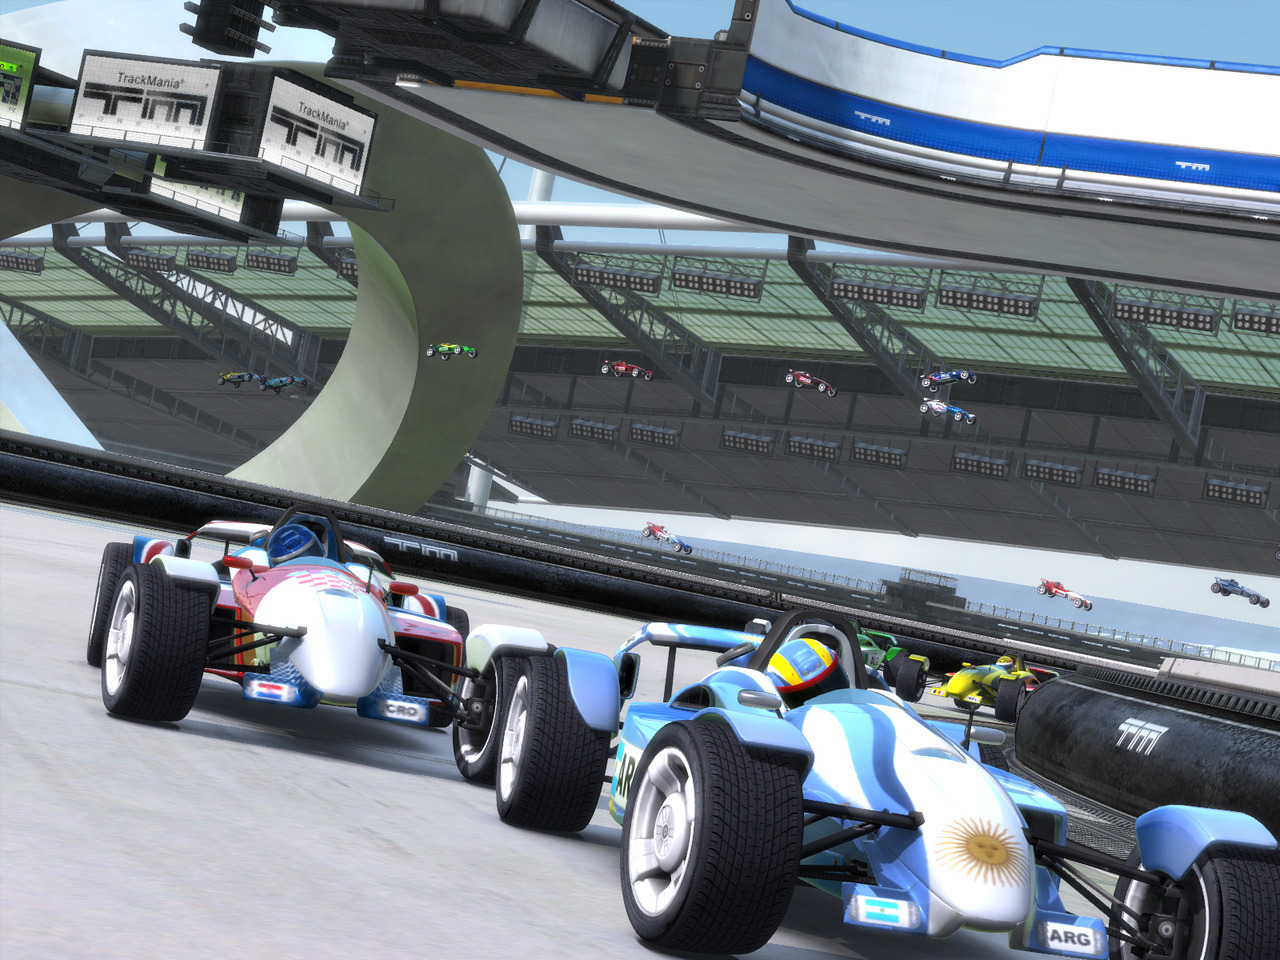 trackmania nations forever (6)